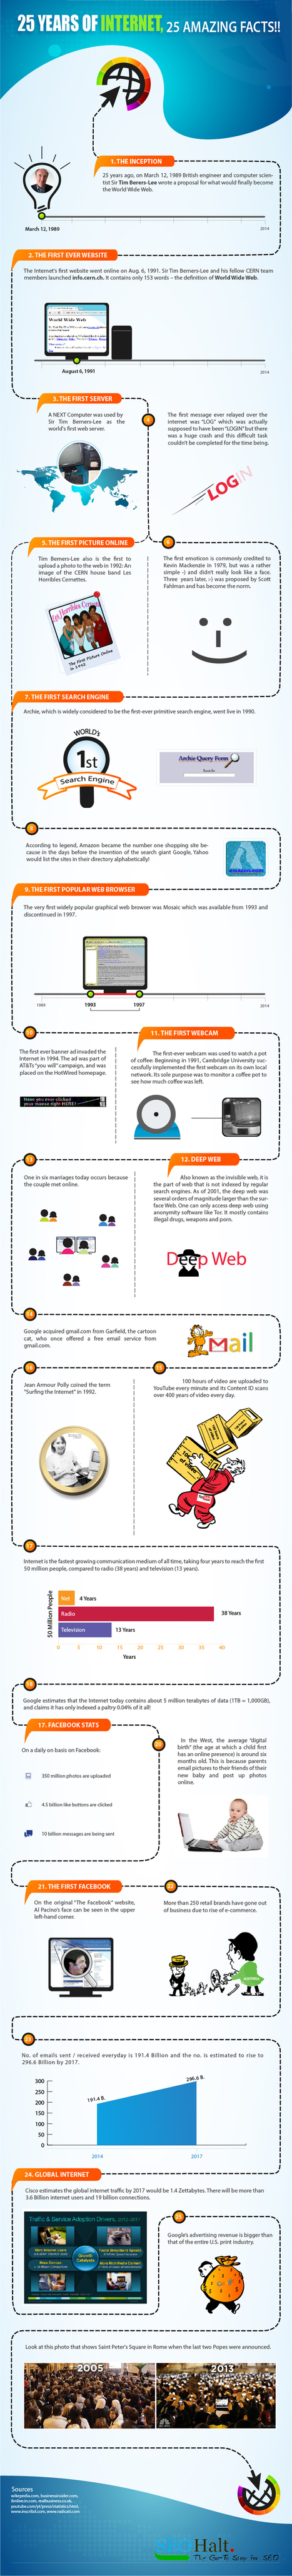 25 Amazing Facts about the Internet [Infographic] | Social Media in Manufacturing Today | Scoop.it